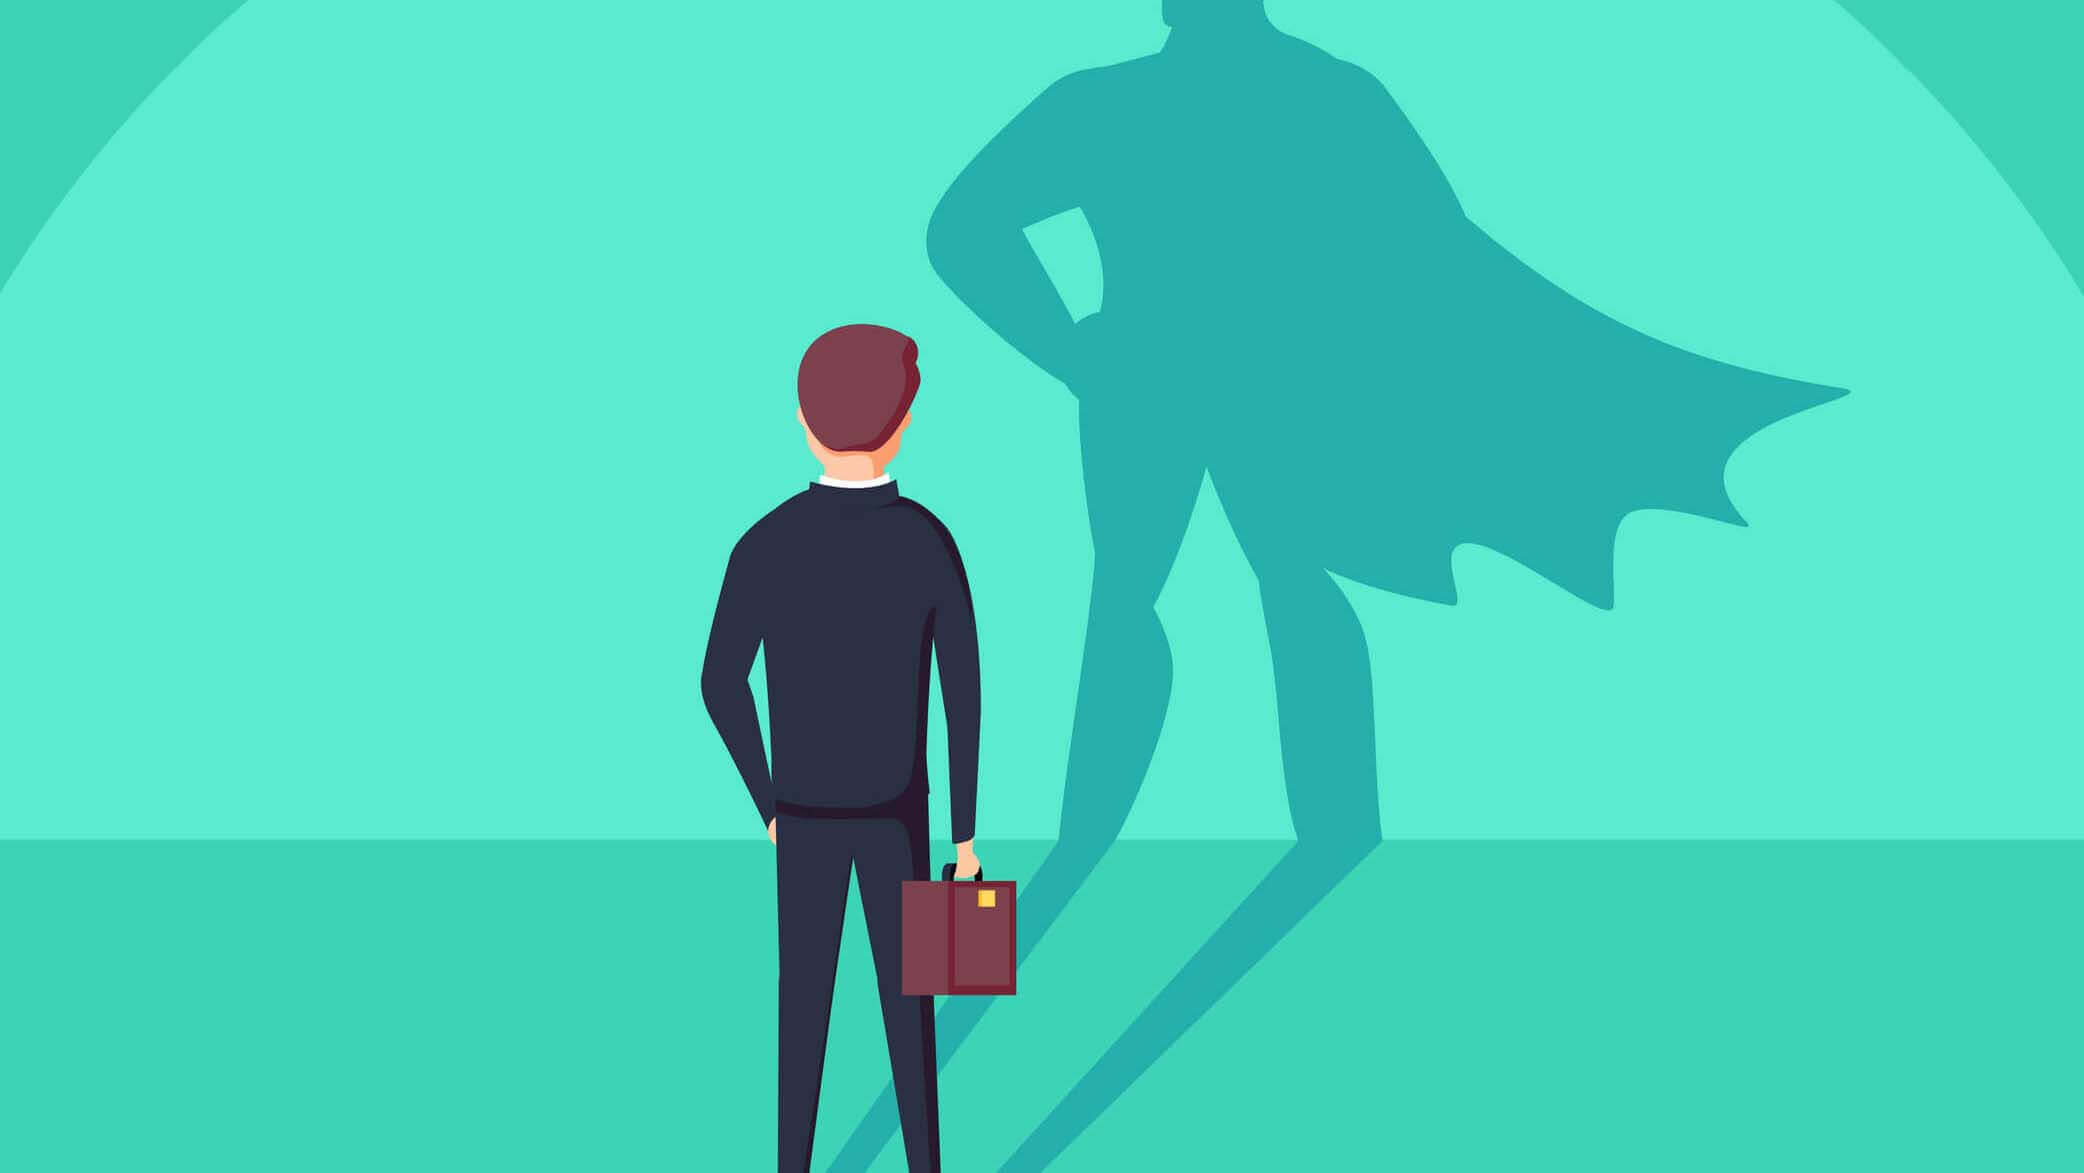 B2B Leaders are Corporate Heroes